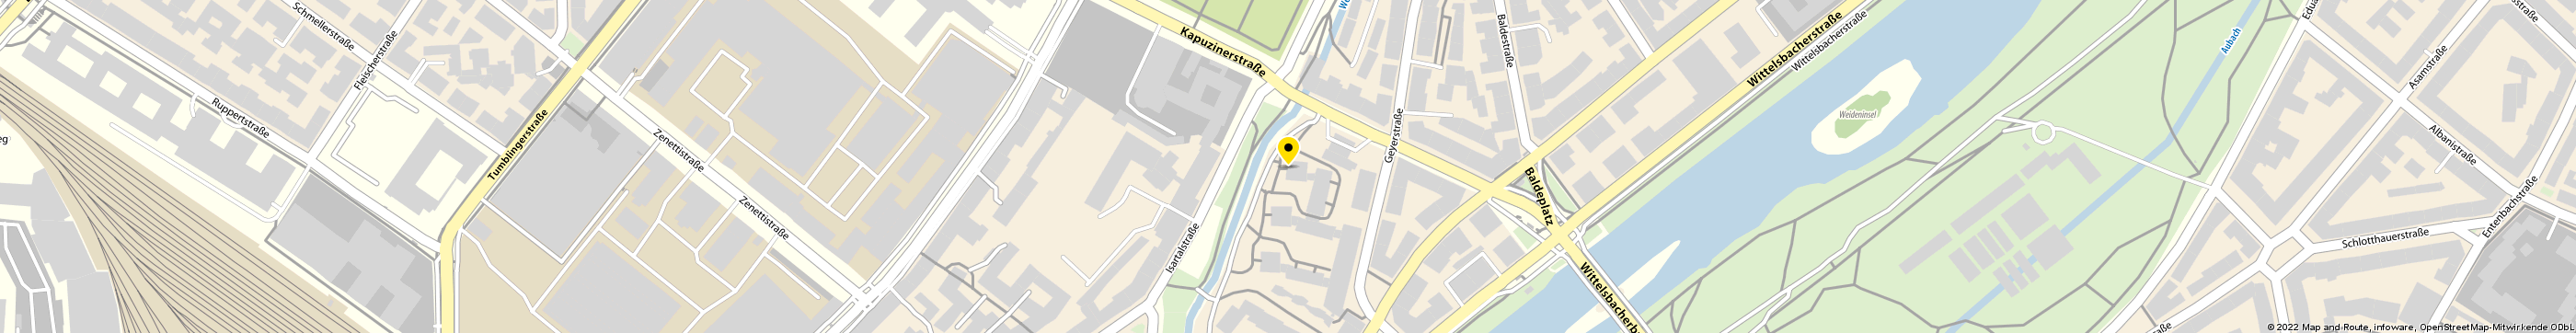 Angerbauer & Partner sales performance improvement in München-Isarvorstadt Karte